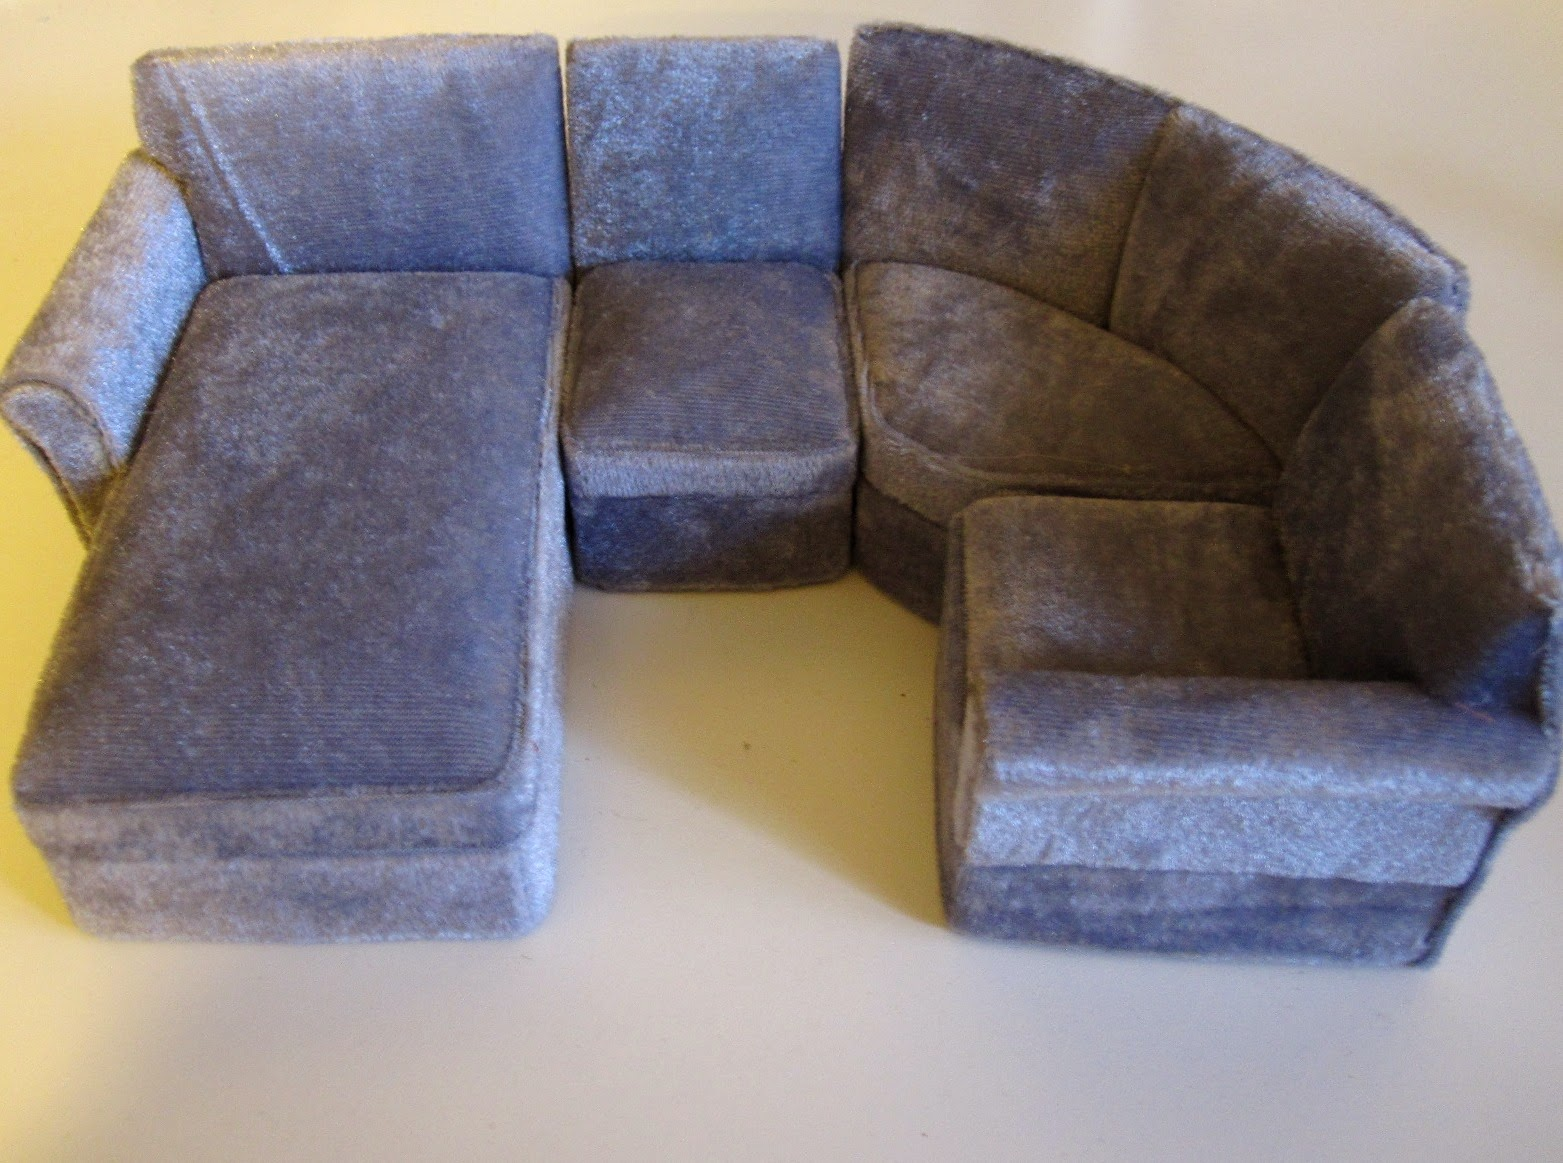 Modern dolls house miniature four piece grey velvet corner sectional sofa with chaise